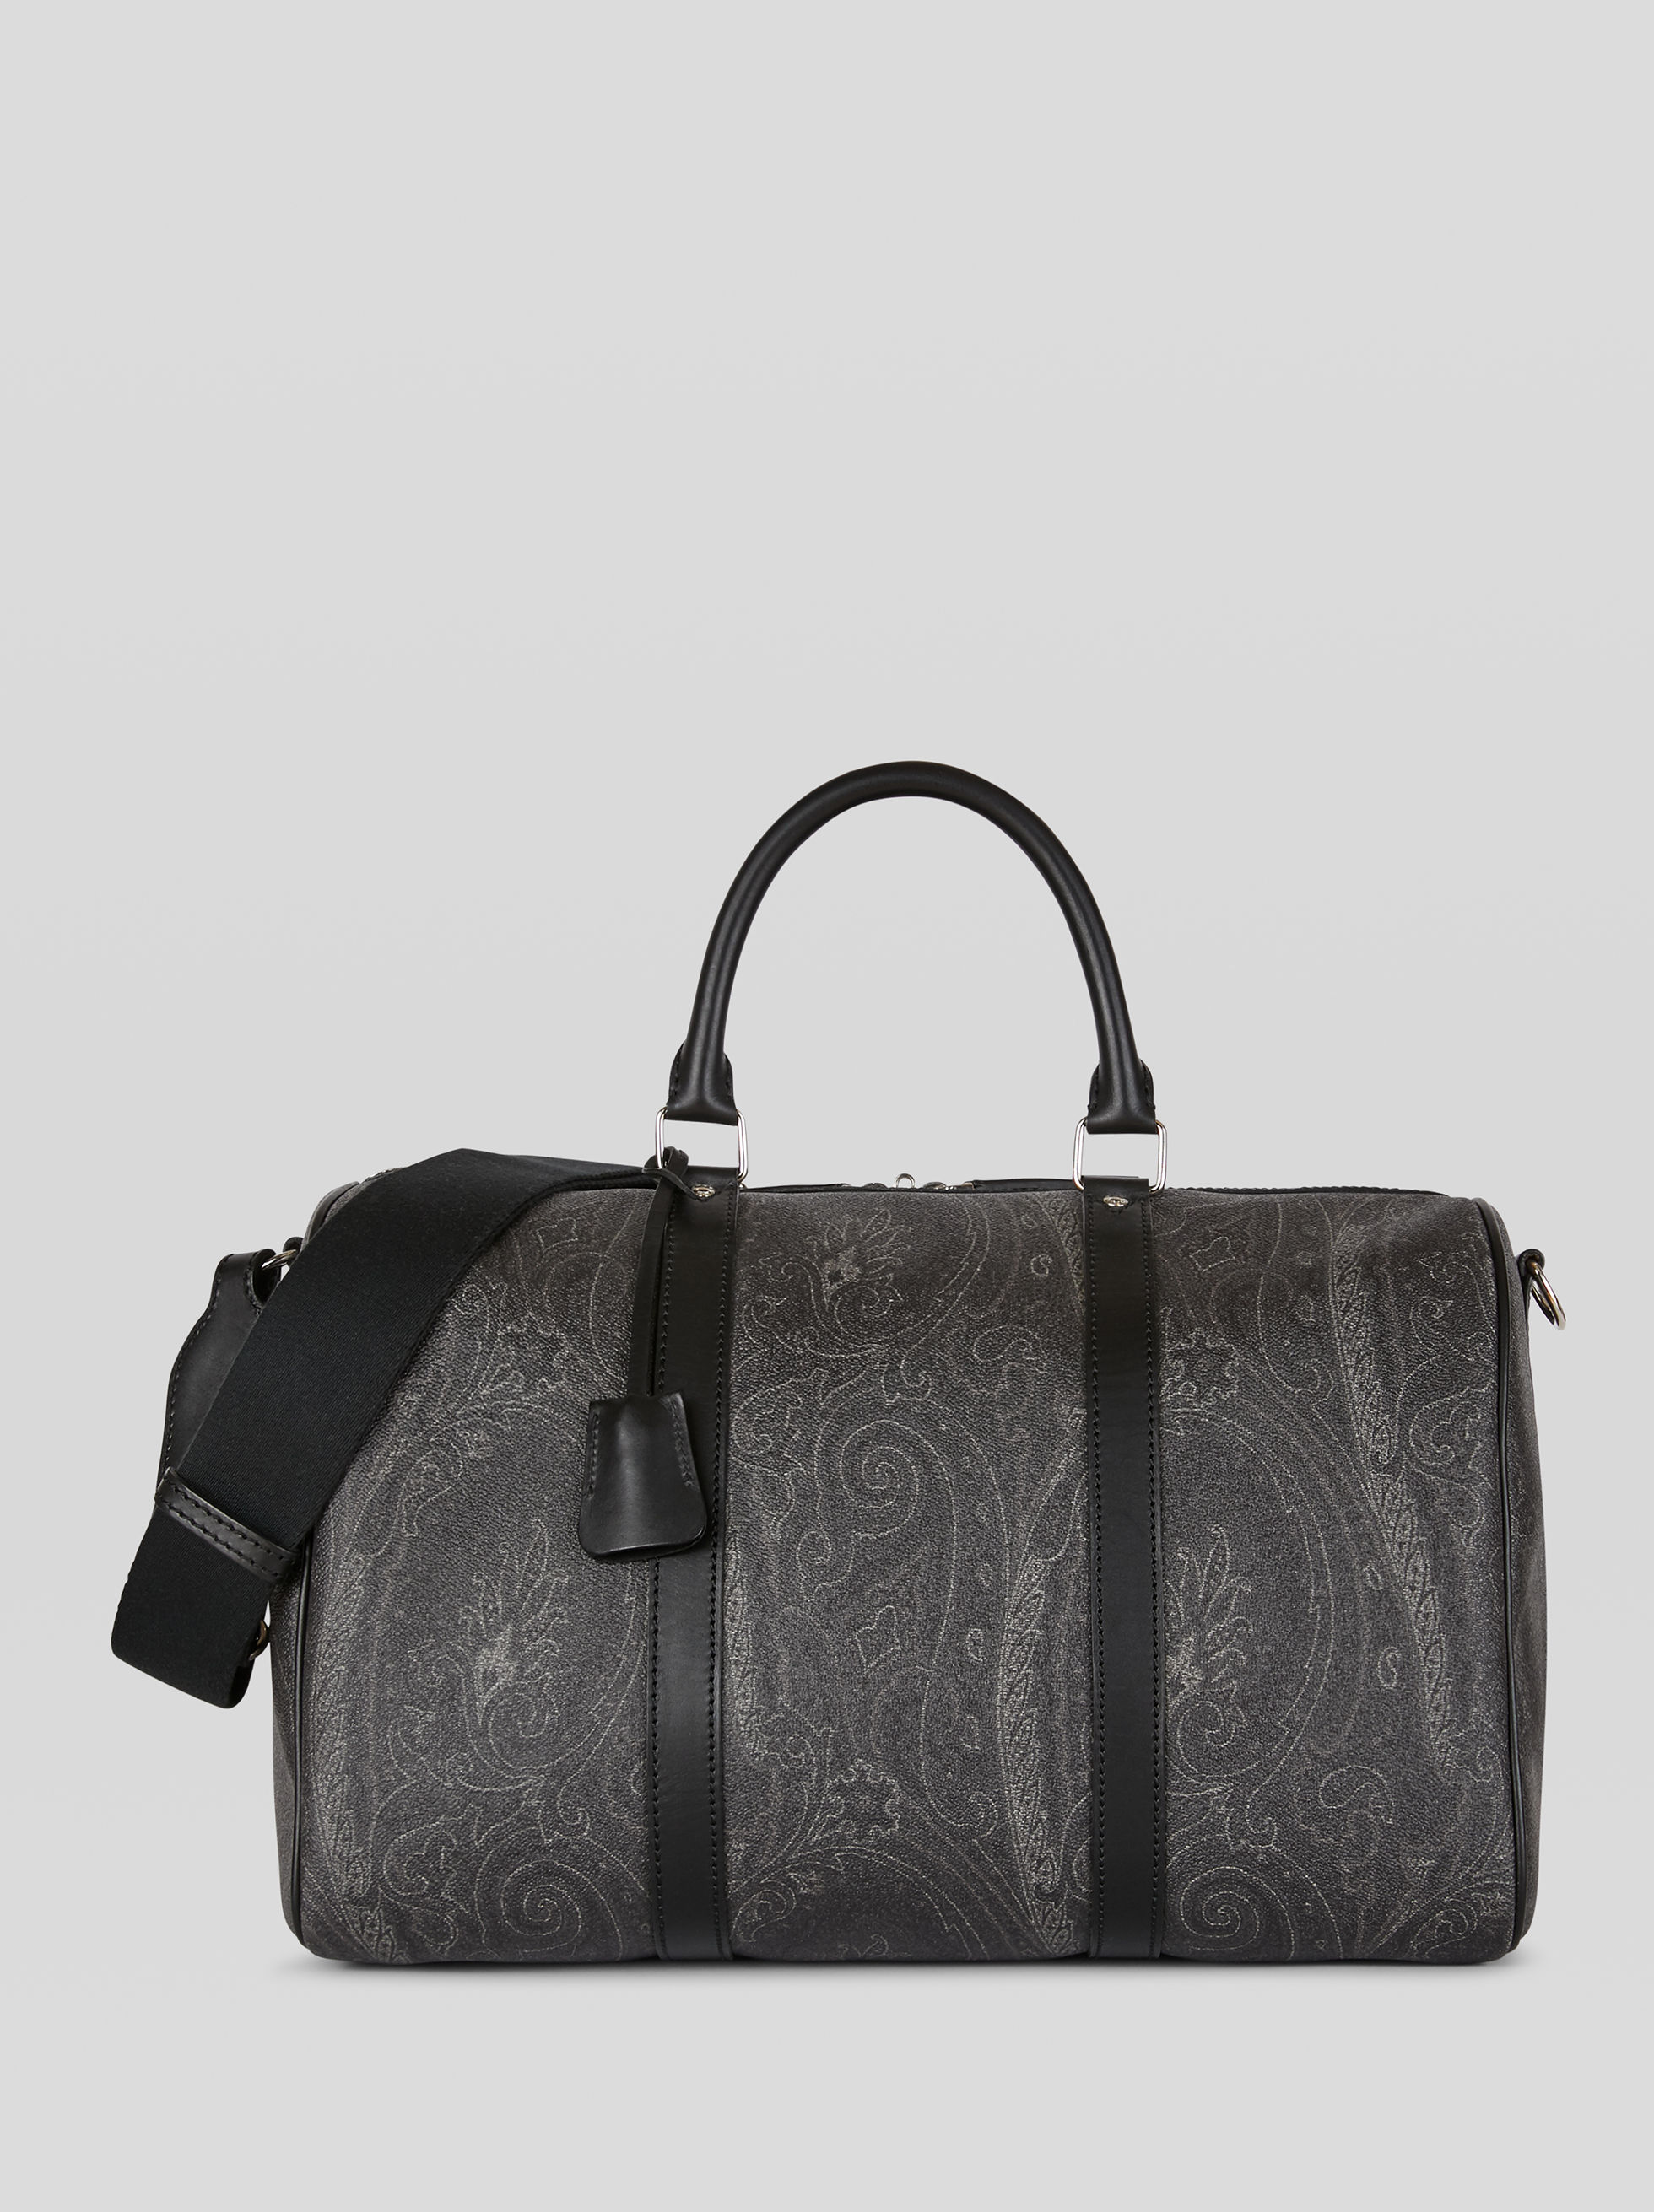 TRAVEL BAG WITH PAISLEY MOTIFS